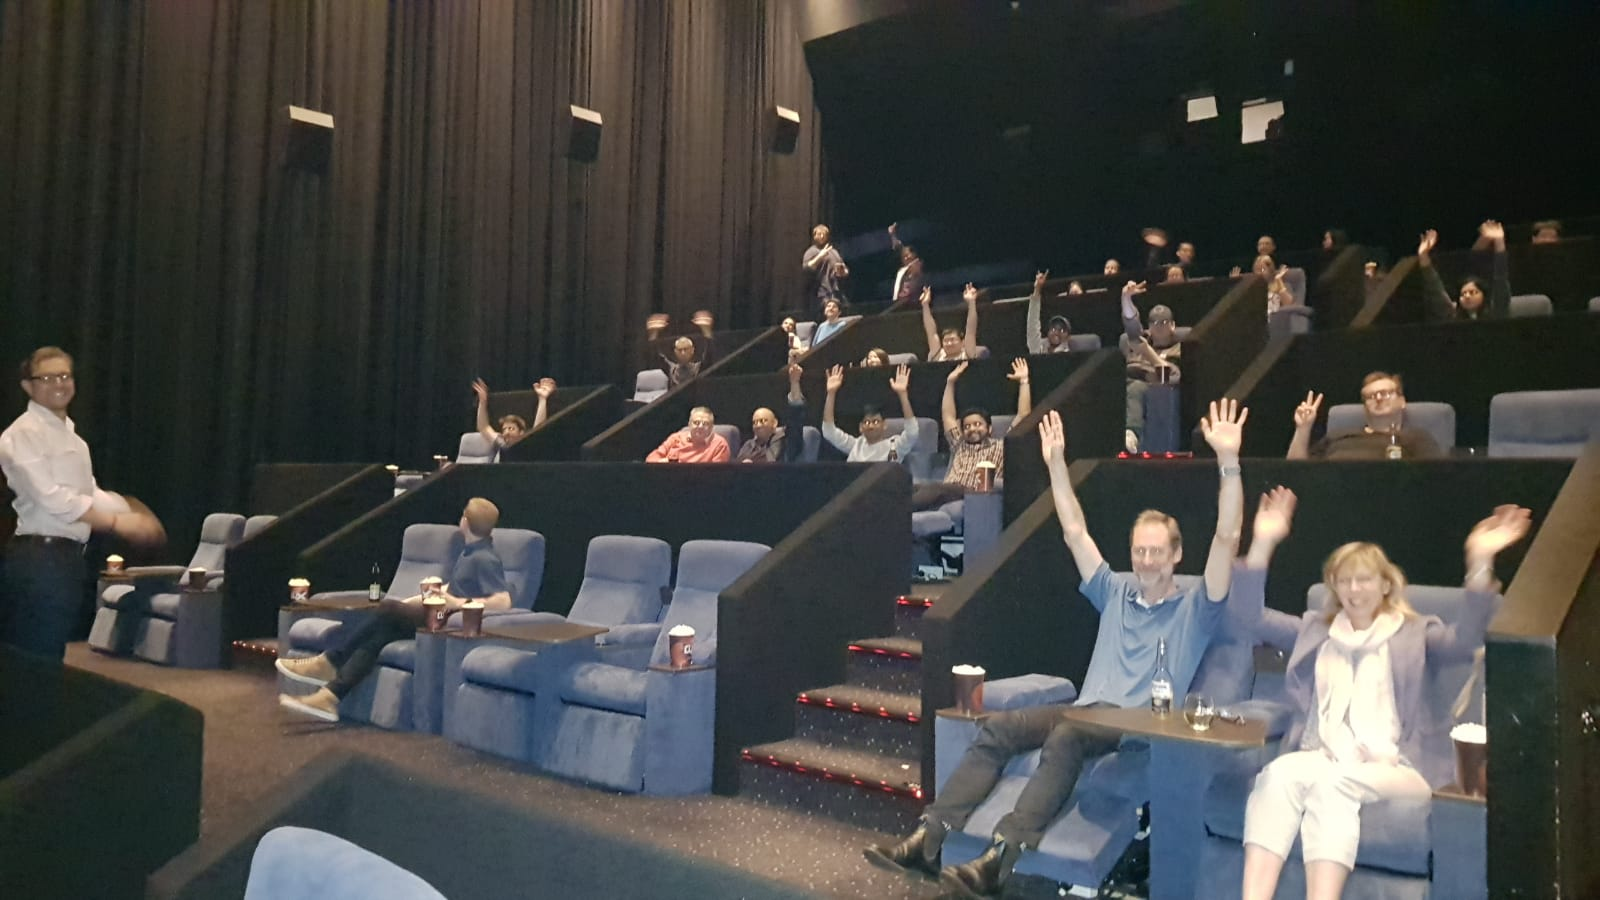 Not all heroes wear capes! Sentral takes their development heroes for a night at the movies with Avengers: EndGame